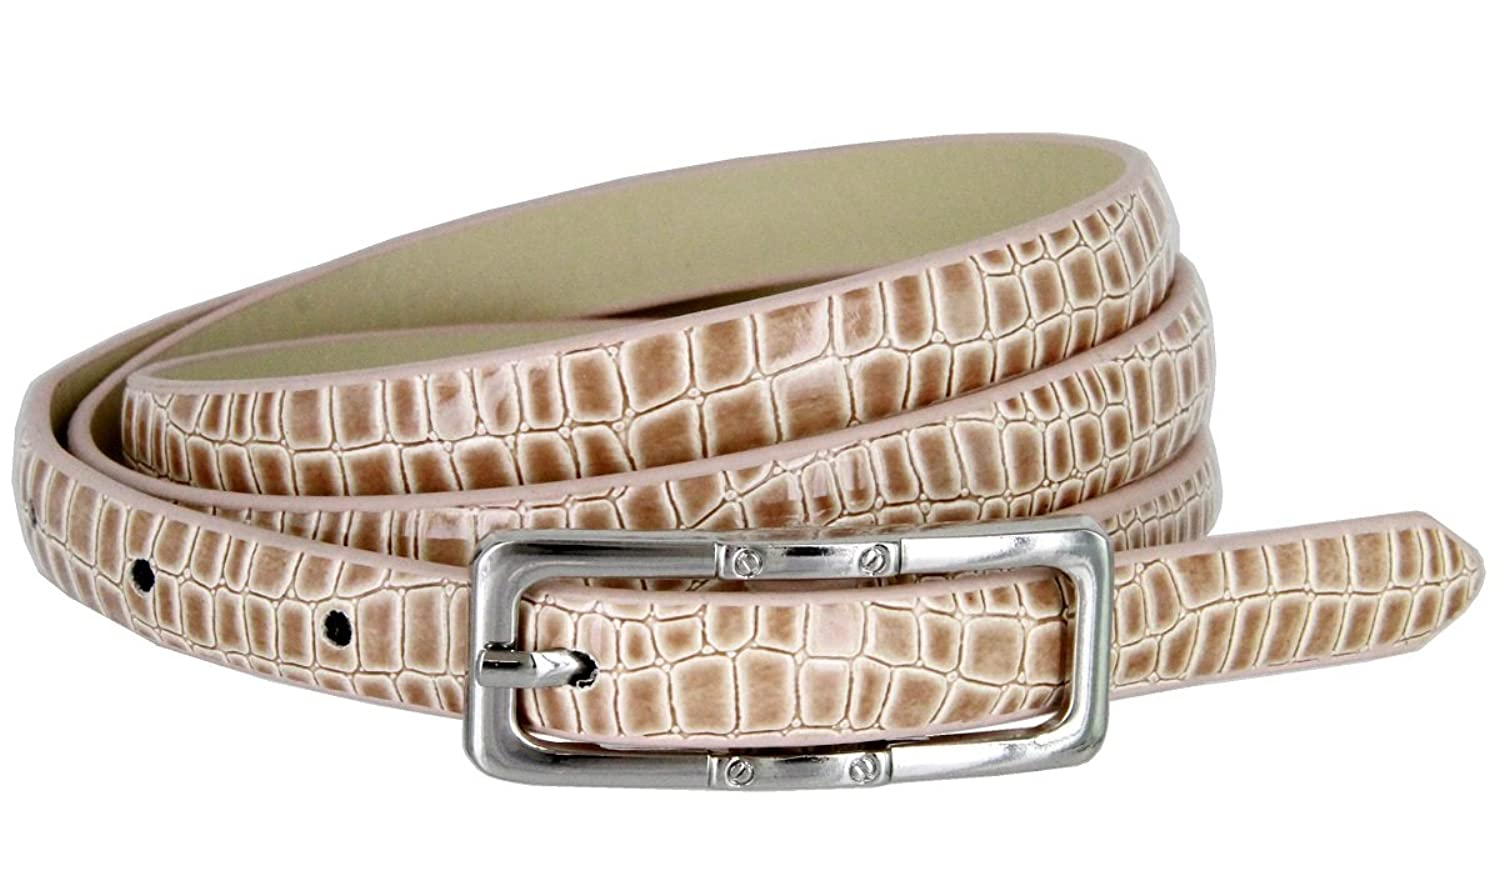 Skinny Alligator Embossed Leather Casual Dress Belt with Buckle for Women 7015 (Tan, Medium)